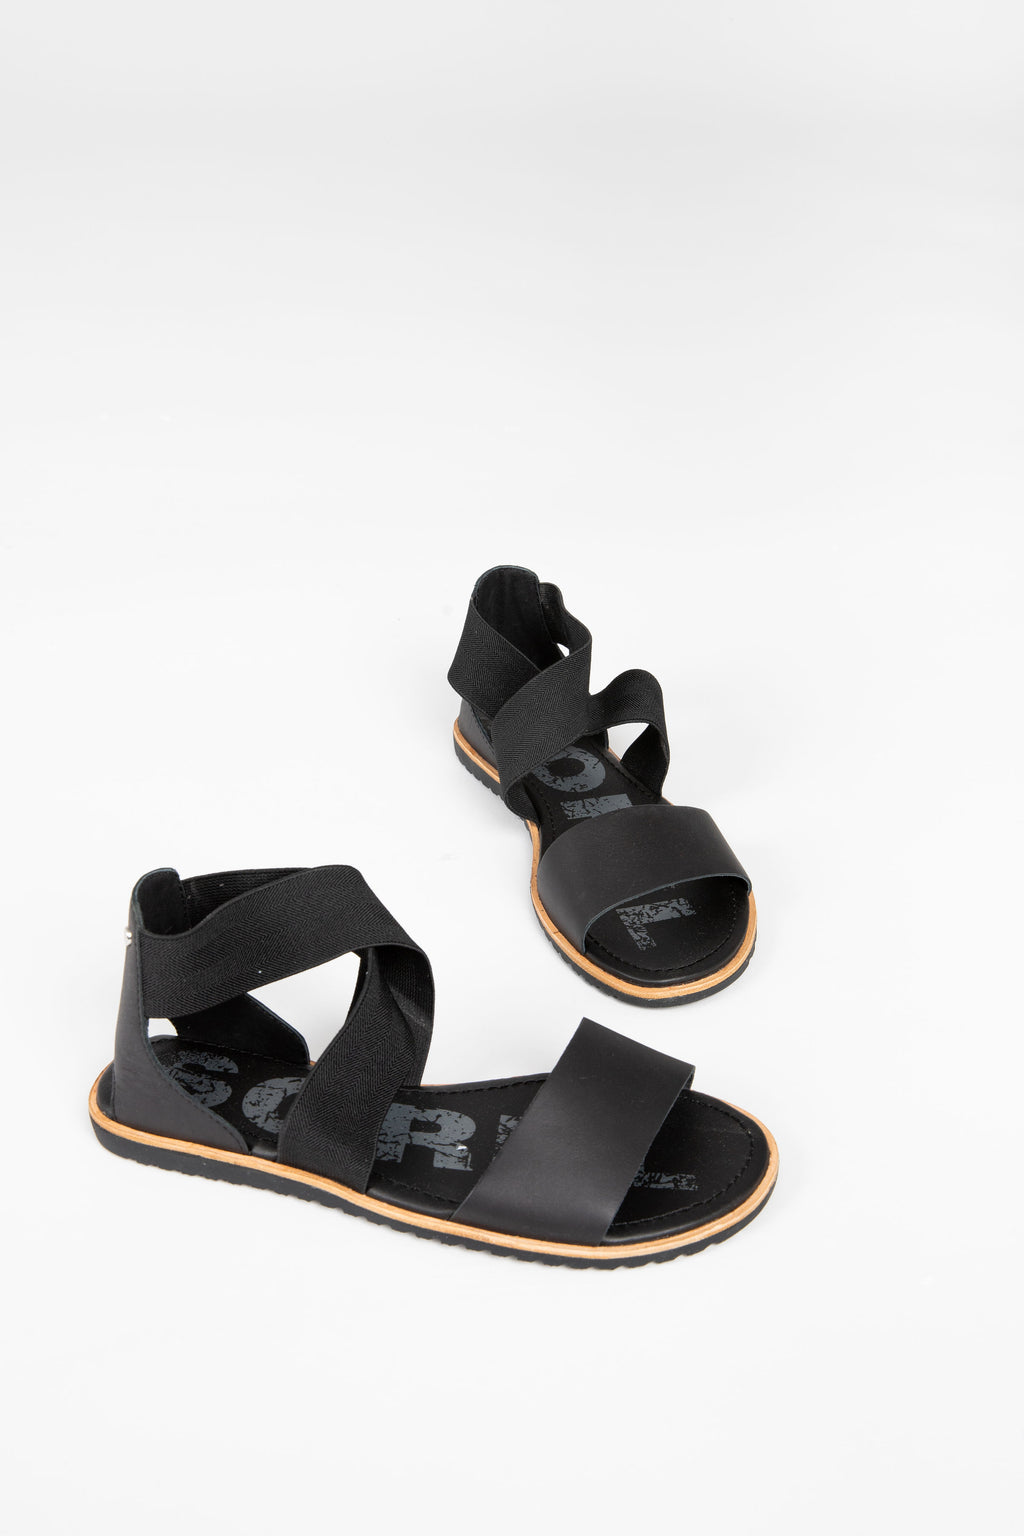 SOREL: Ella Sandal in Black, studio shoot; front view